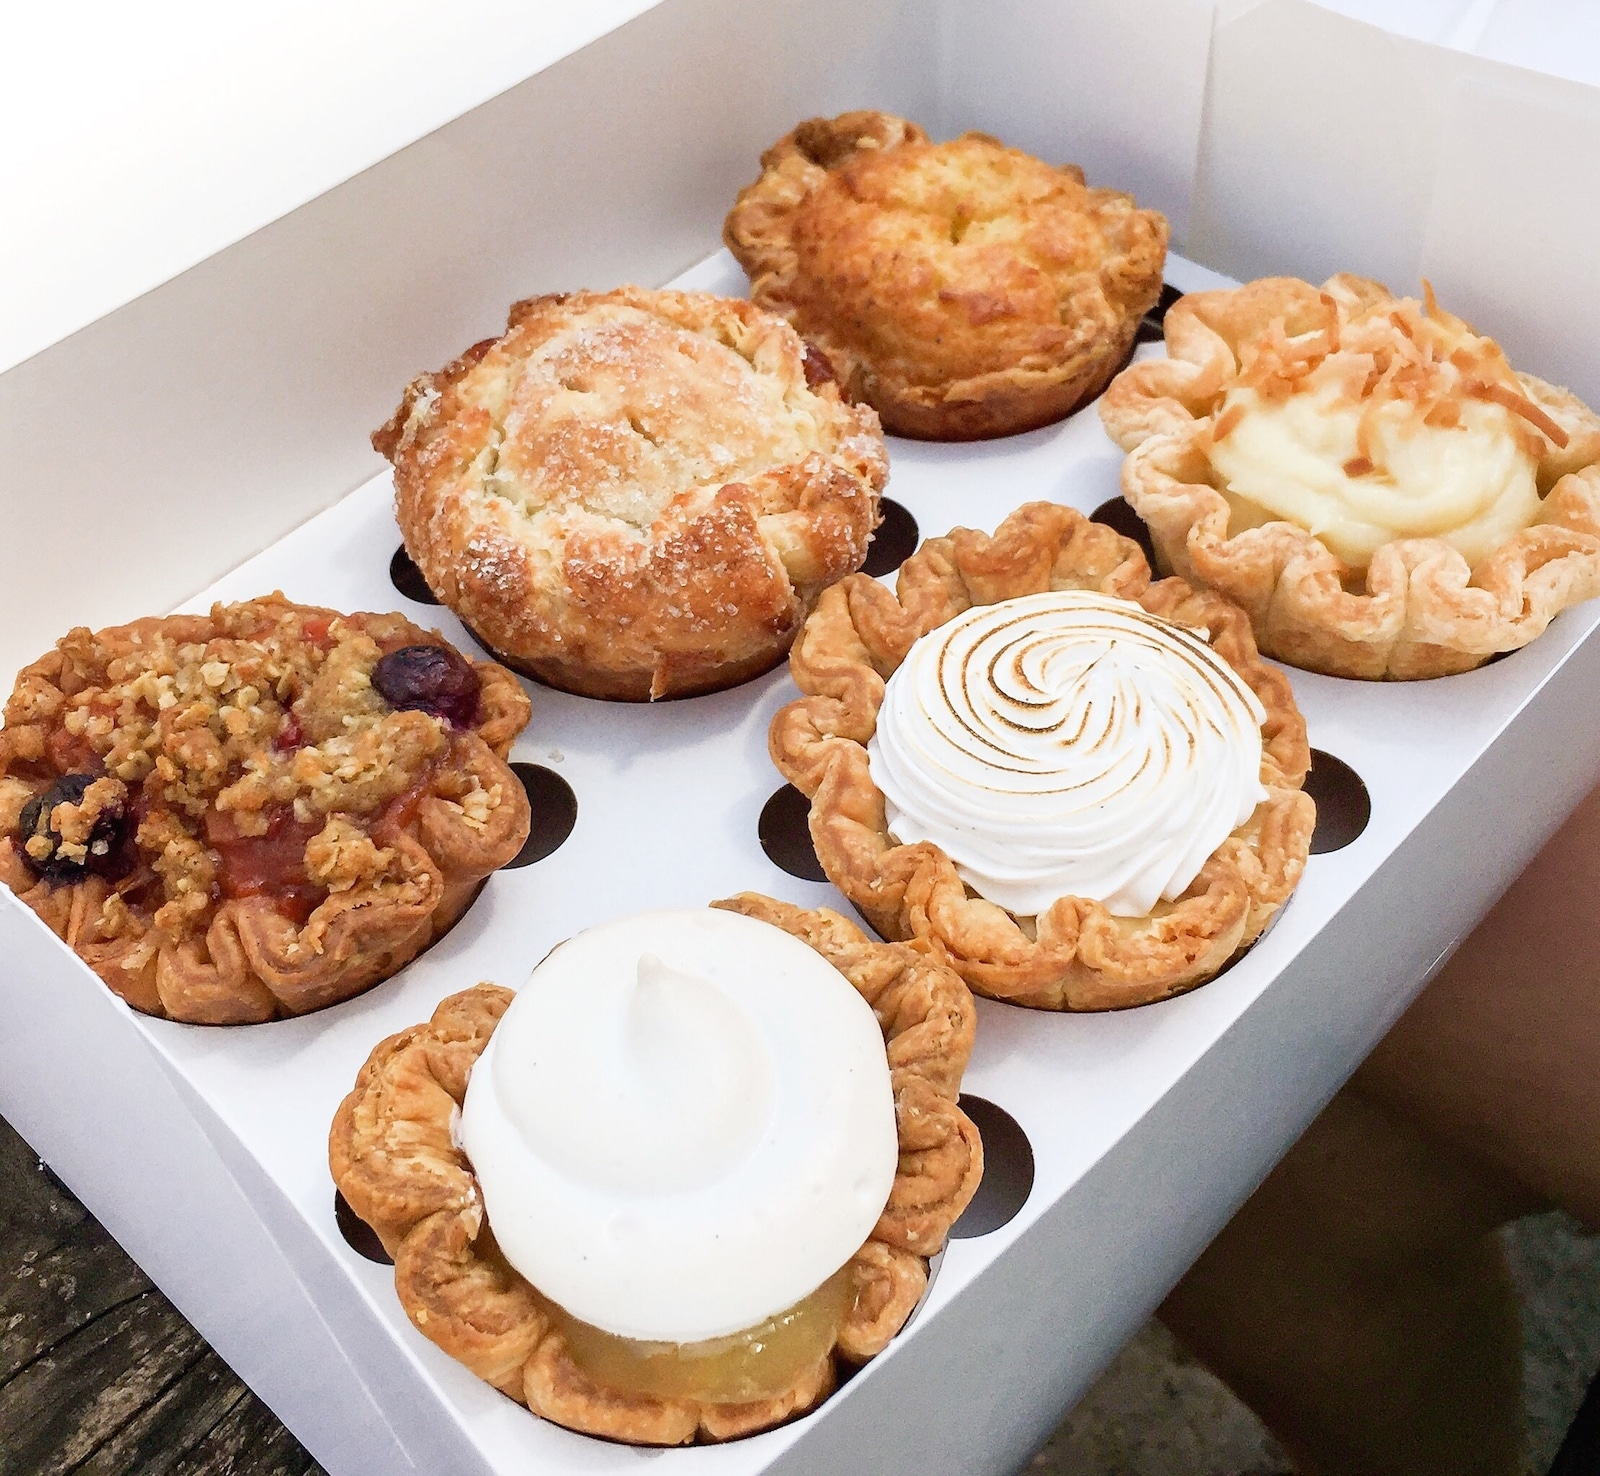 Tiny Pies - Desserts with Benefits